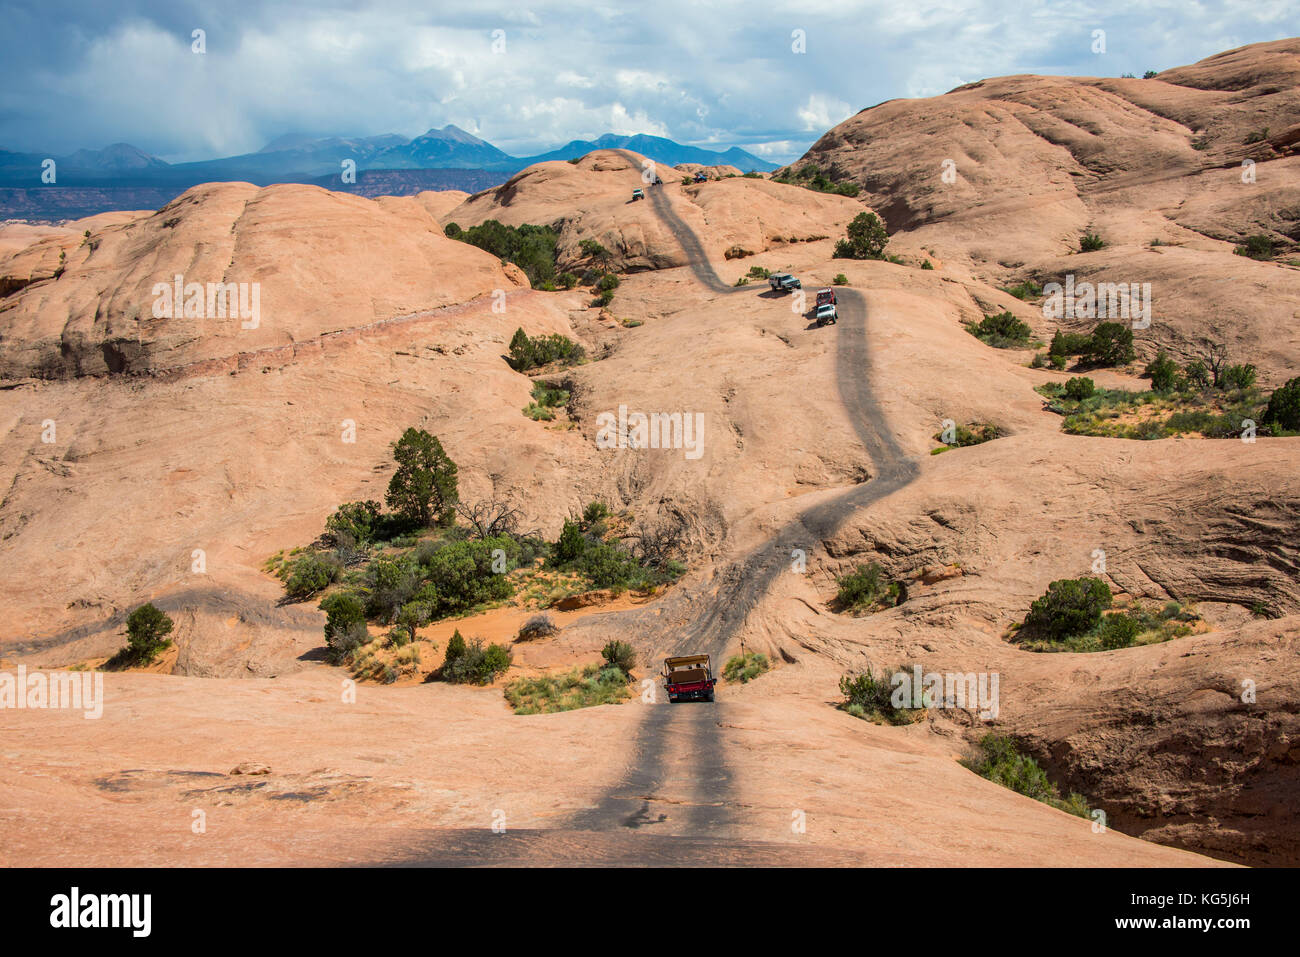 Hummer driving on the slickrock trail, Moab, Utah, USA - Stock Image